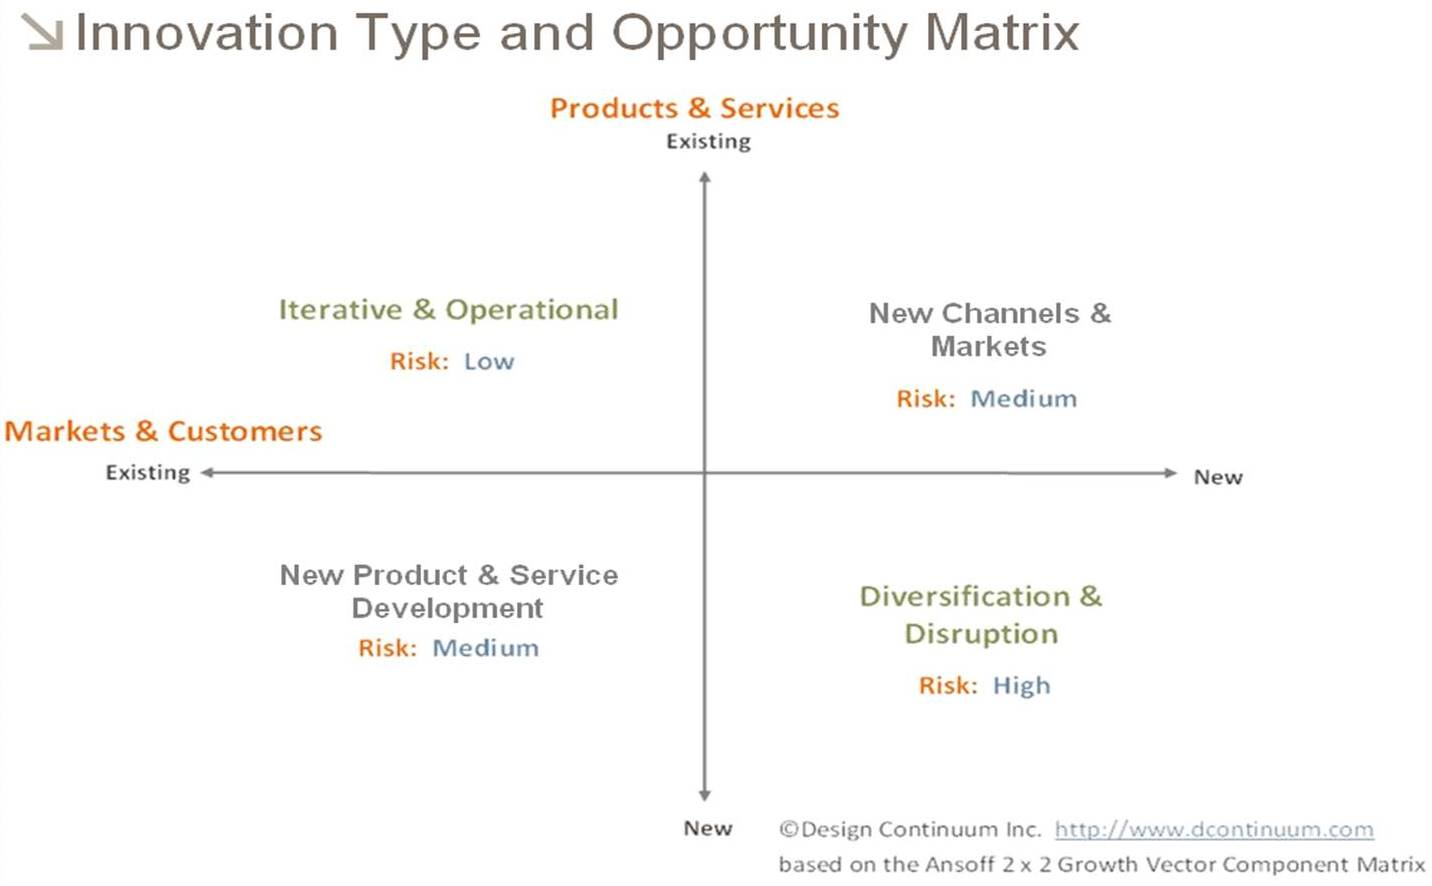 Innovation Type and Opportunity Matrix